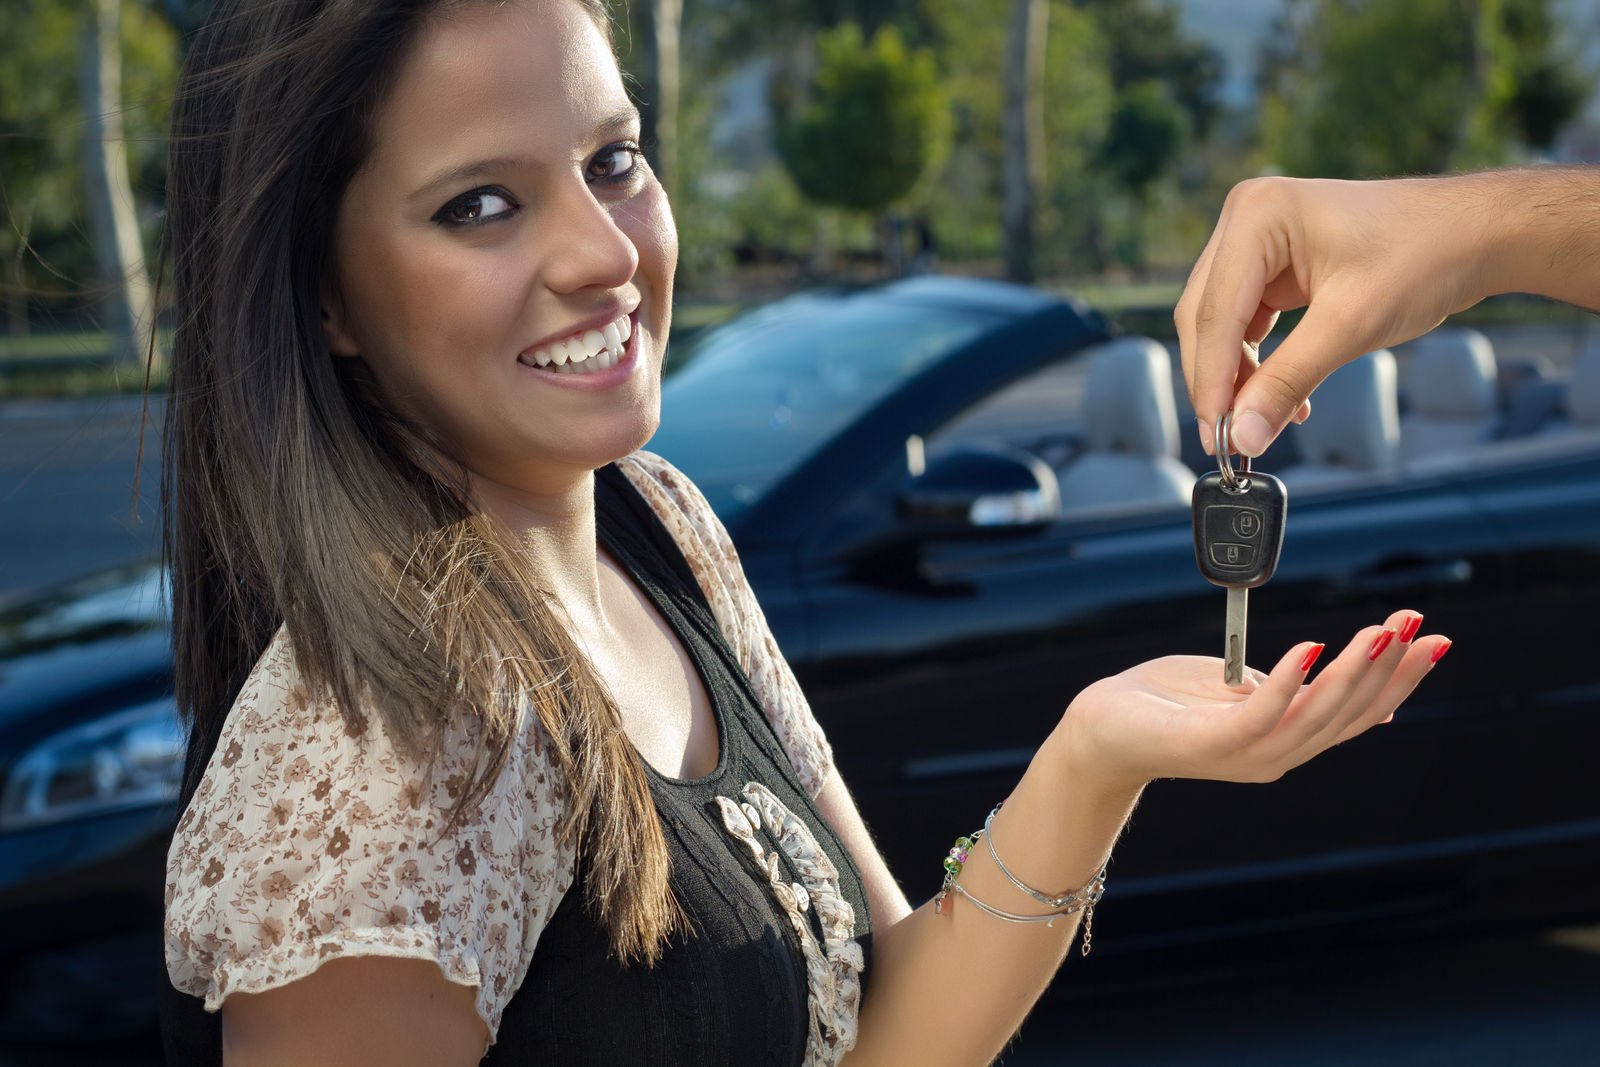 Free insurance car deals for 19 year olds